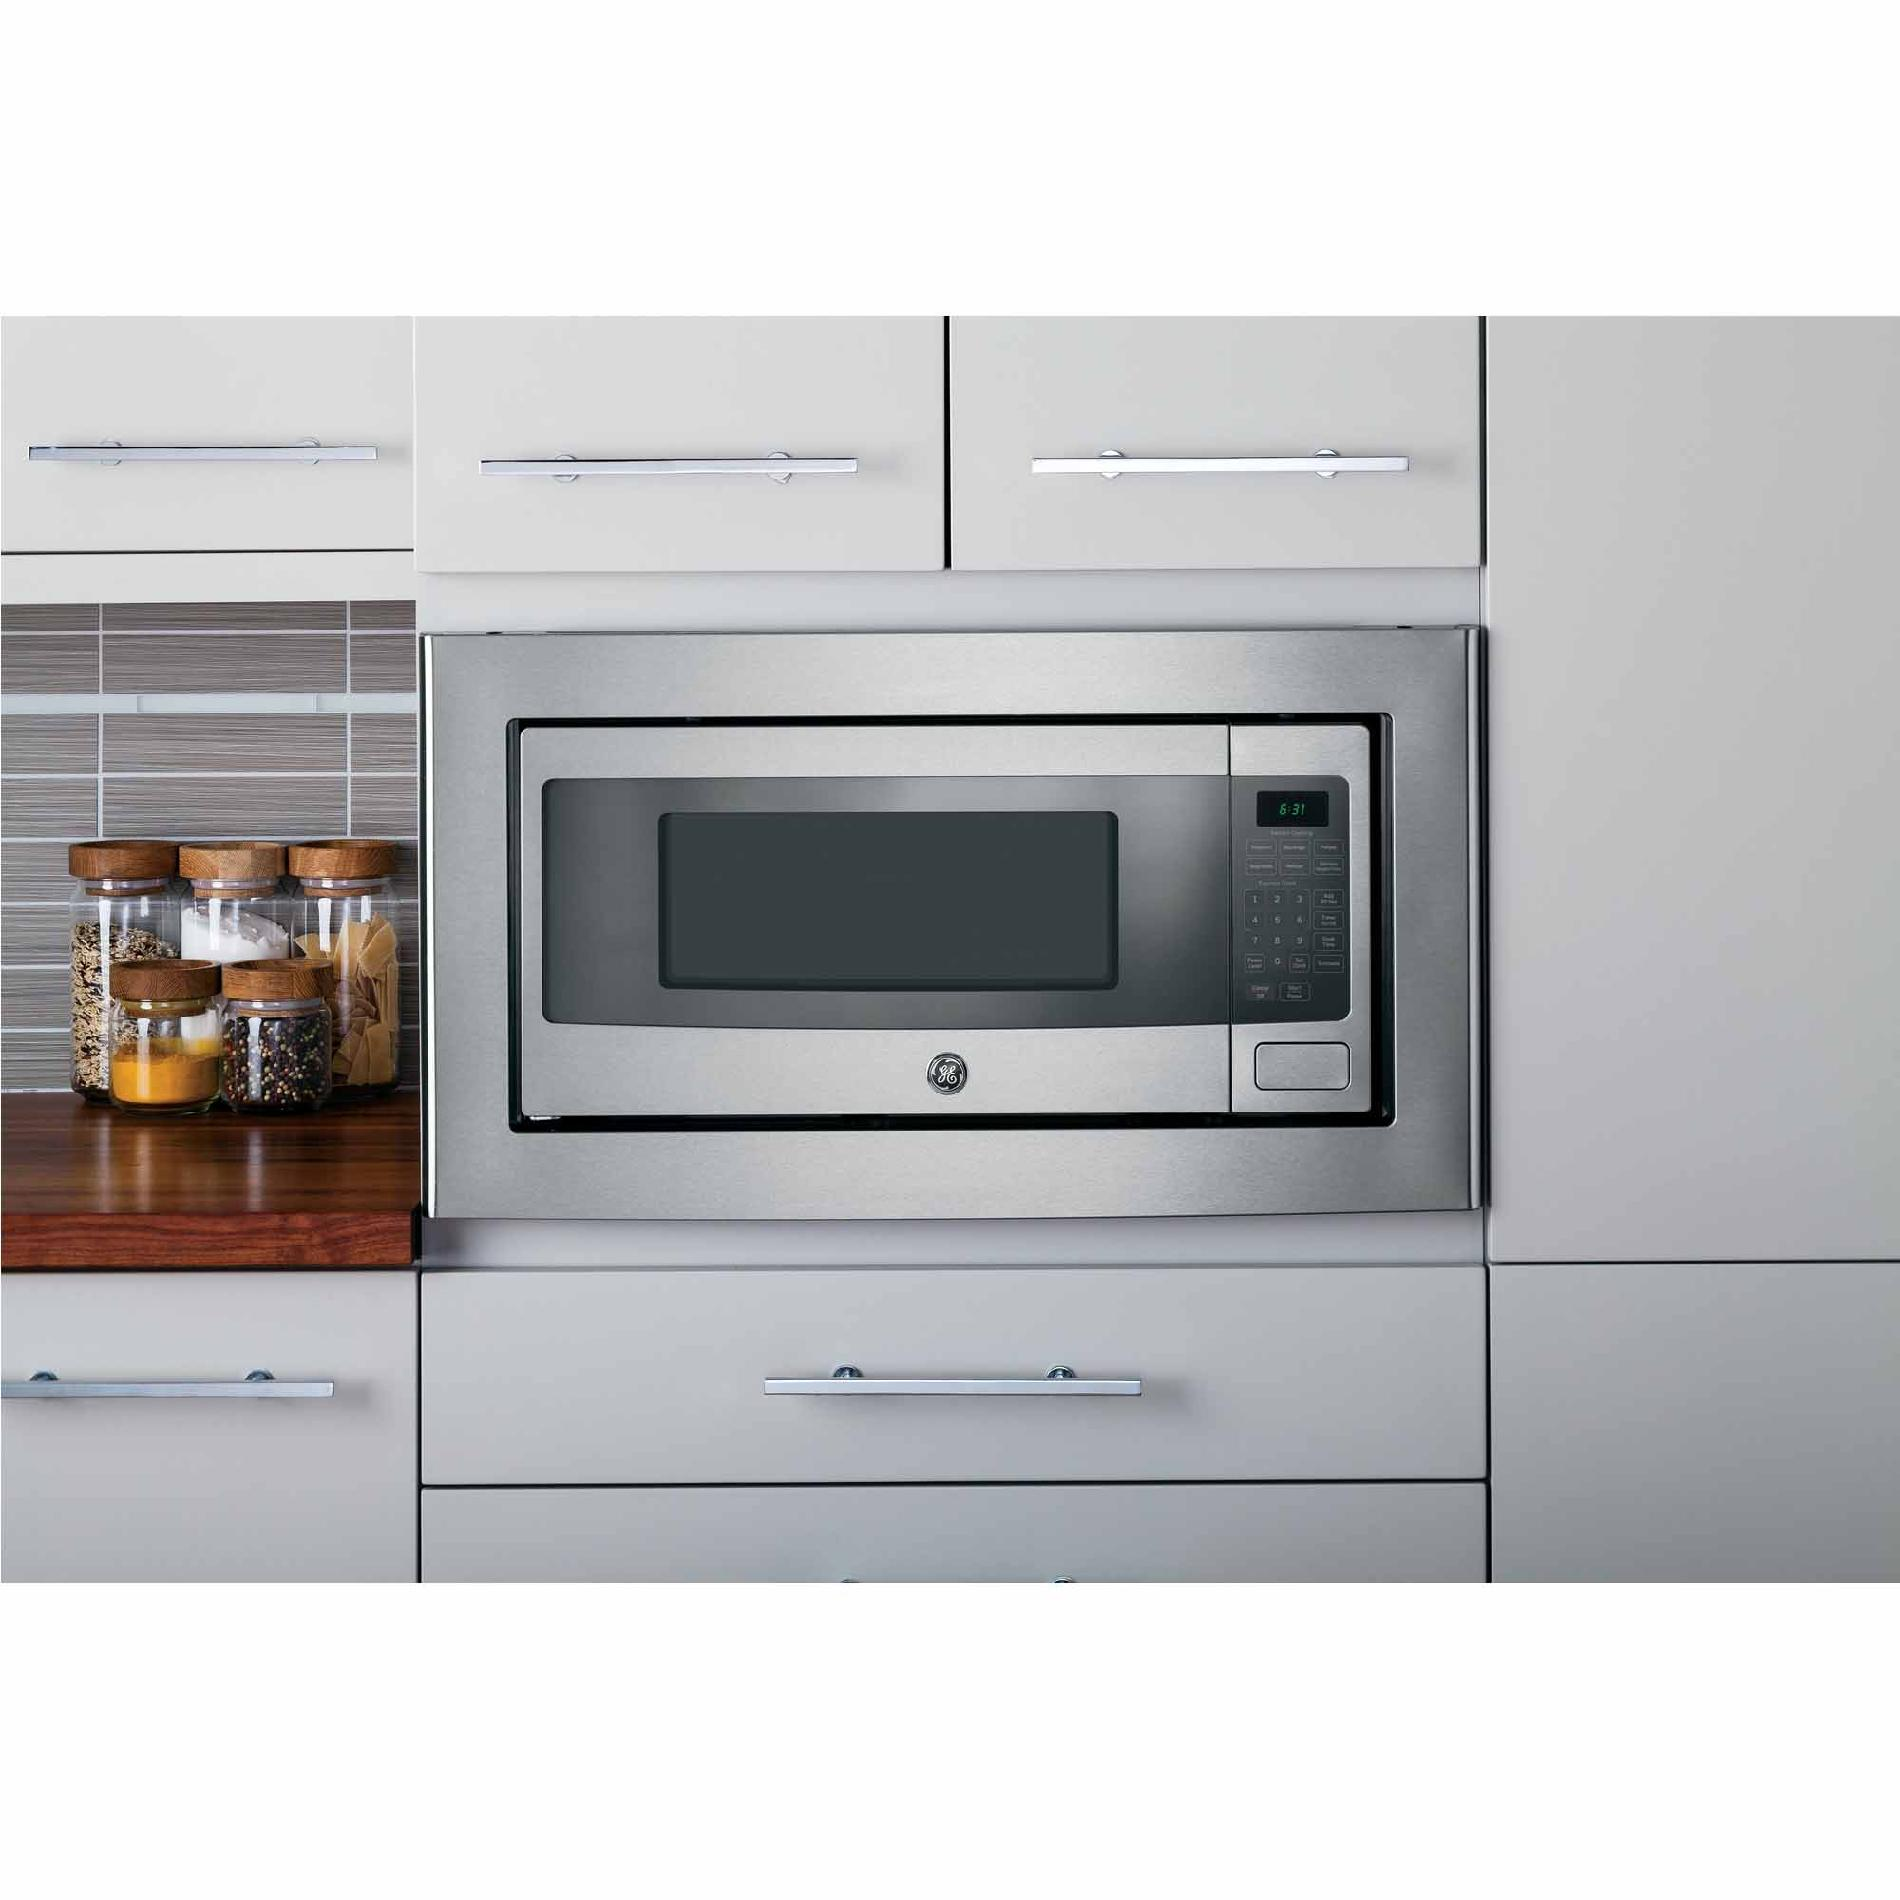 GE Profile PEM31SFSS 1.1 cu. ft. Countertop Microwave Oven - Stainless